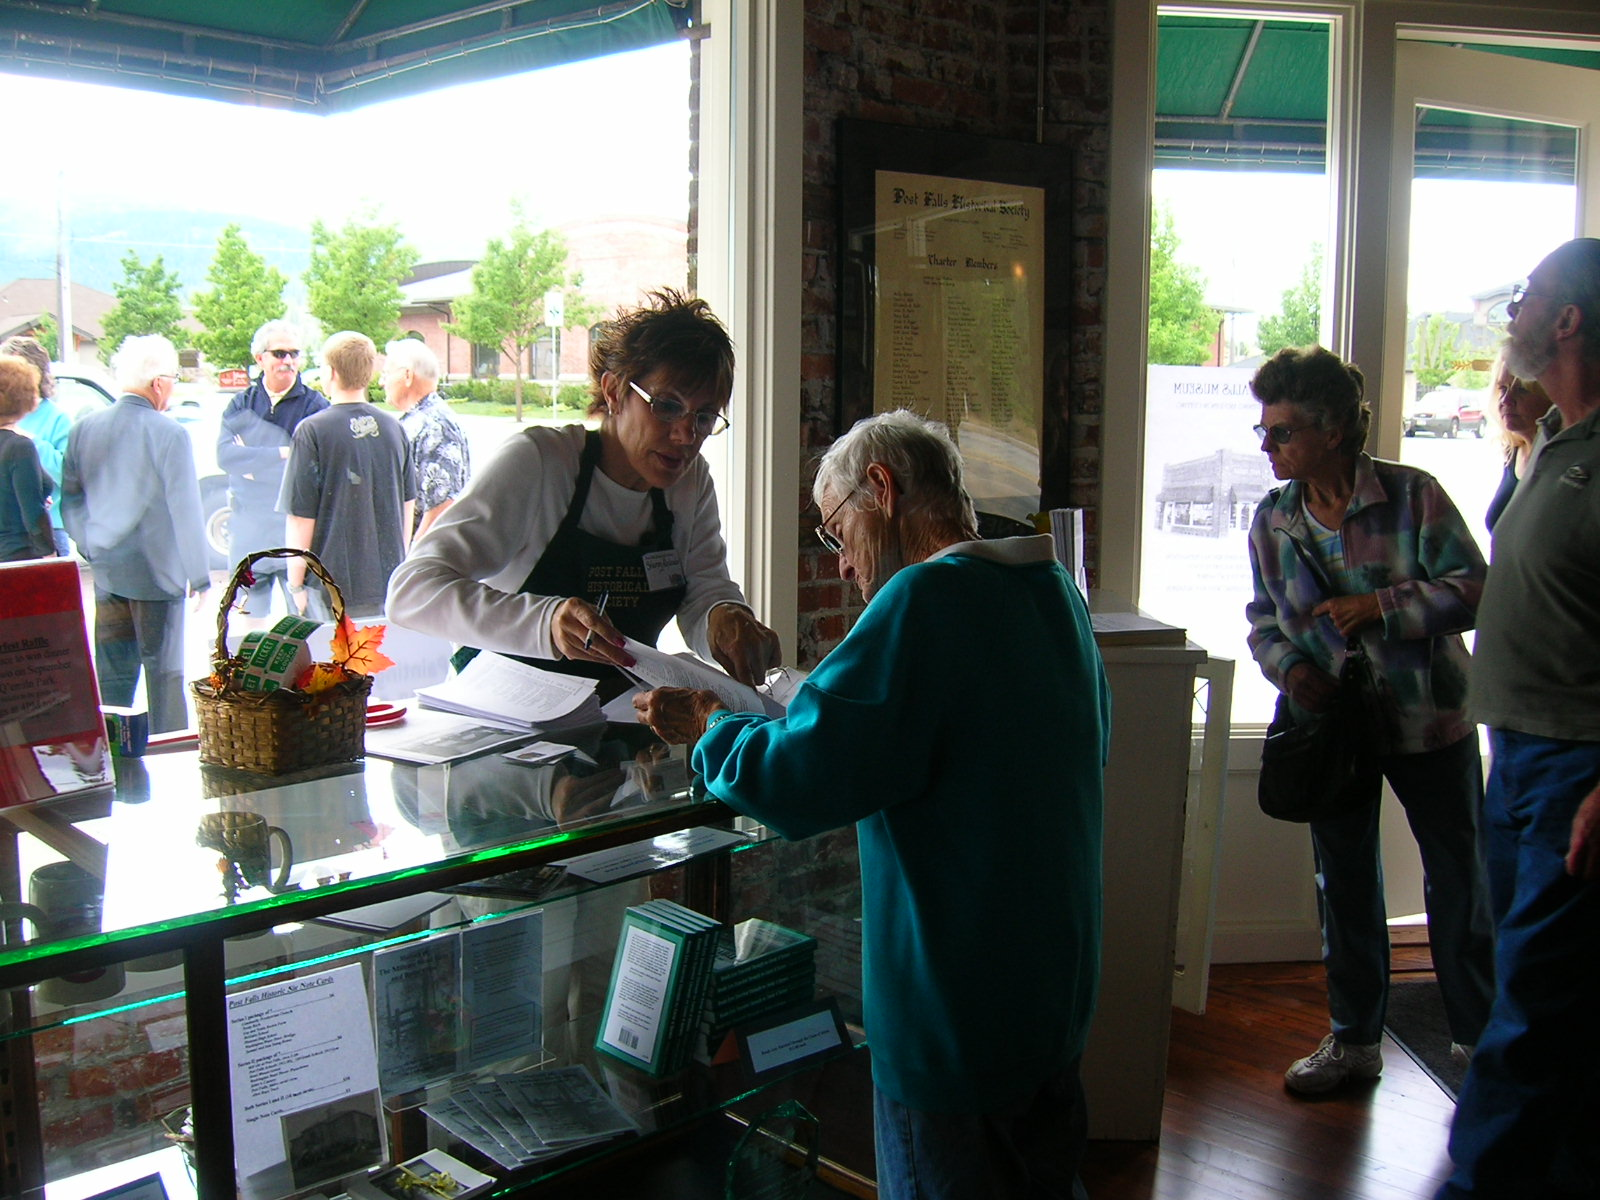 Open House- Signing up for Membership